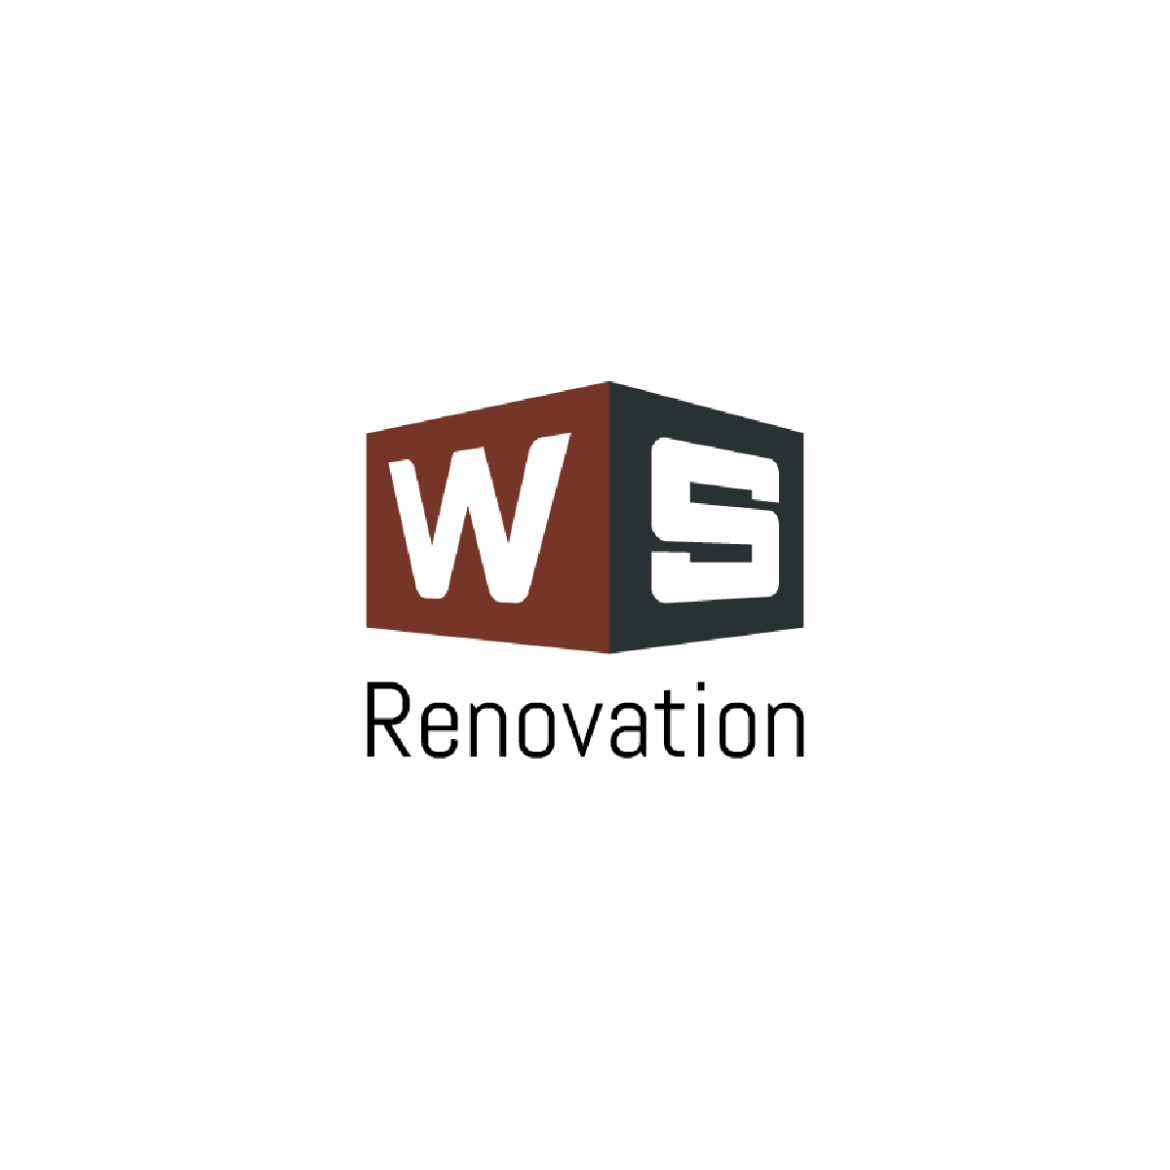 Toronto Home Renovation & Construction (Business Logo Concept)